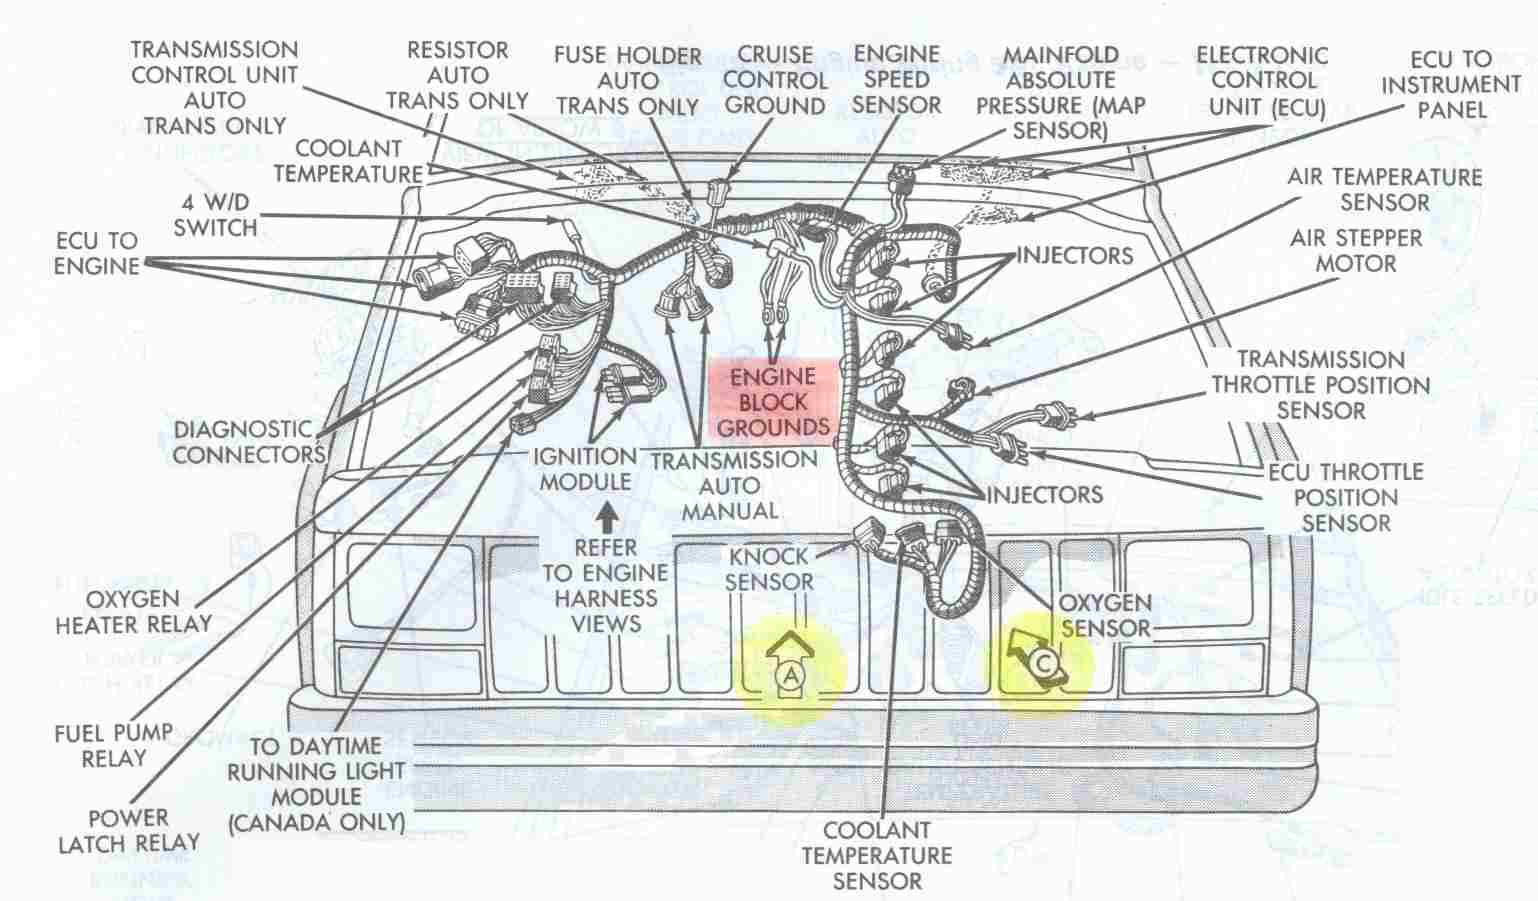 hight resolution of engine bay schematic showing major electrical ground points for 4 0l jeep cherokee engines